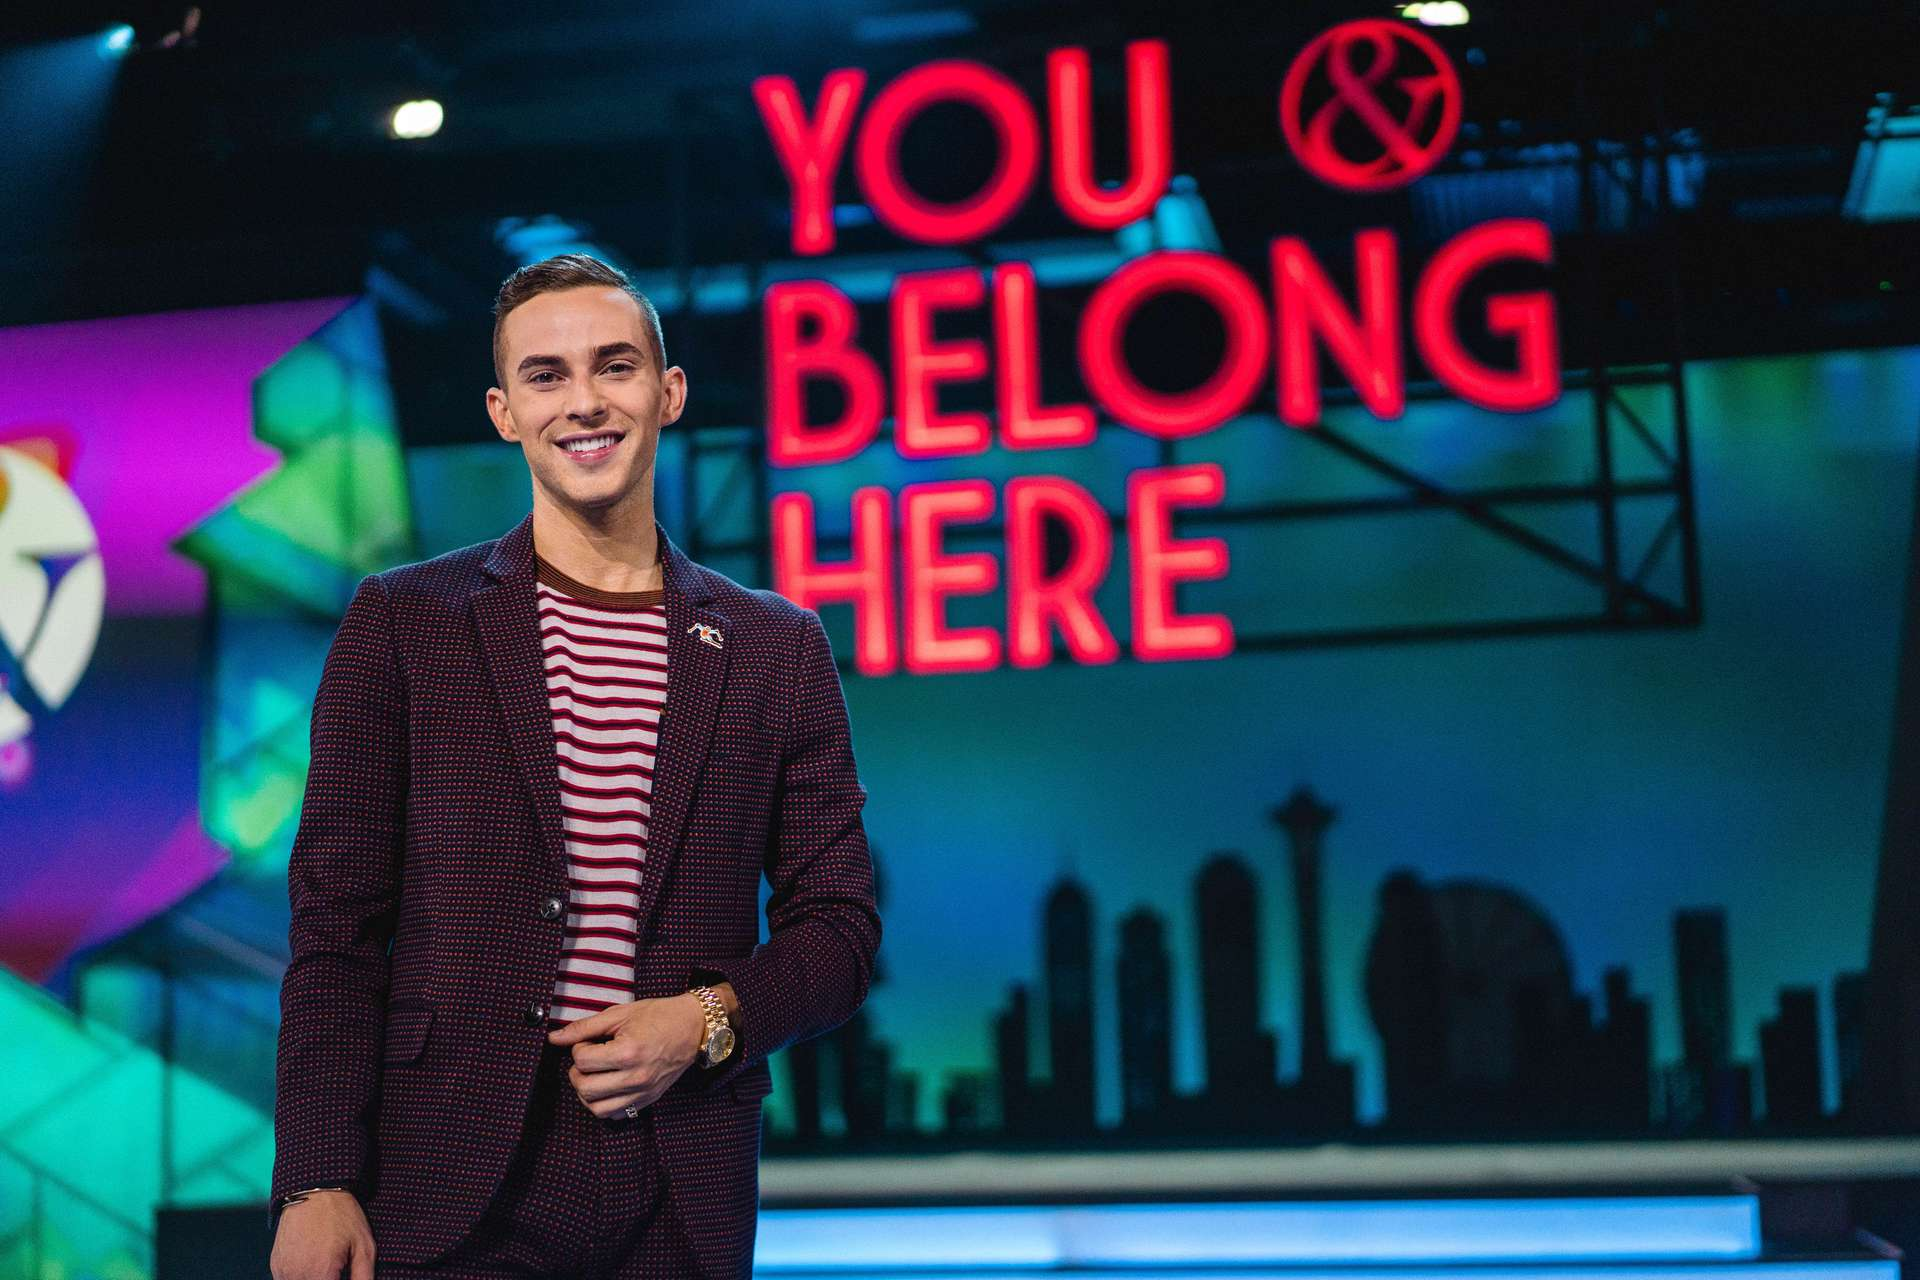 Adam Rippon, Olympic Athlete and celebrity, portrait before his convention speaking appearance.